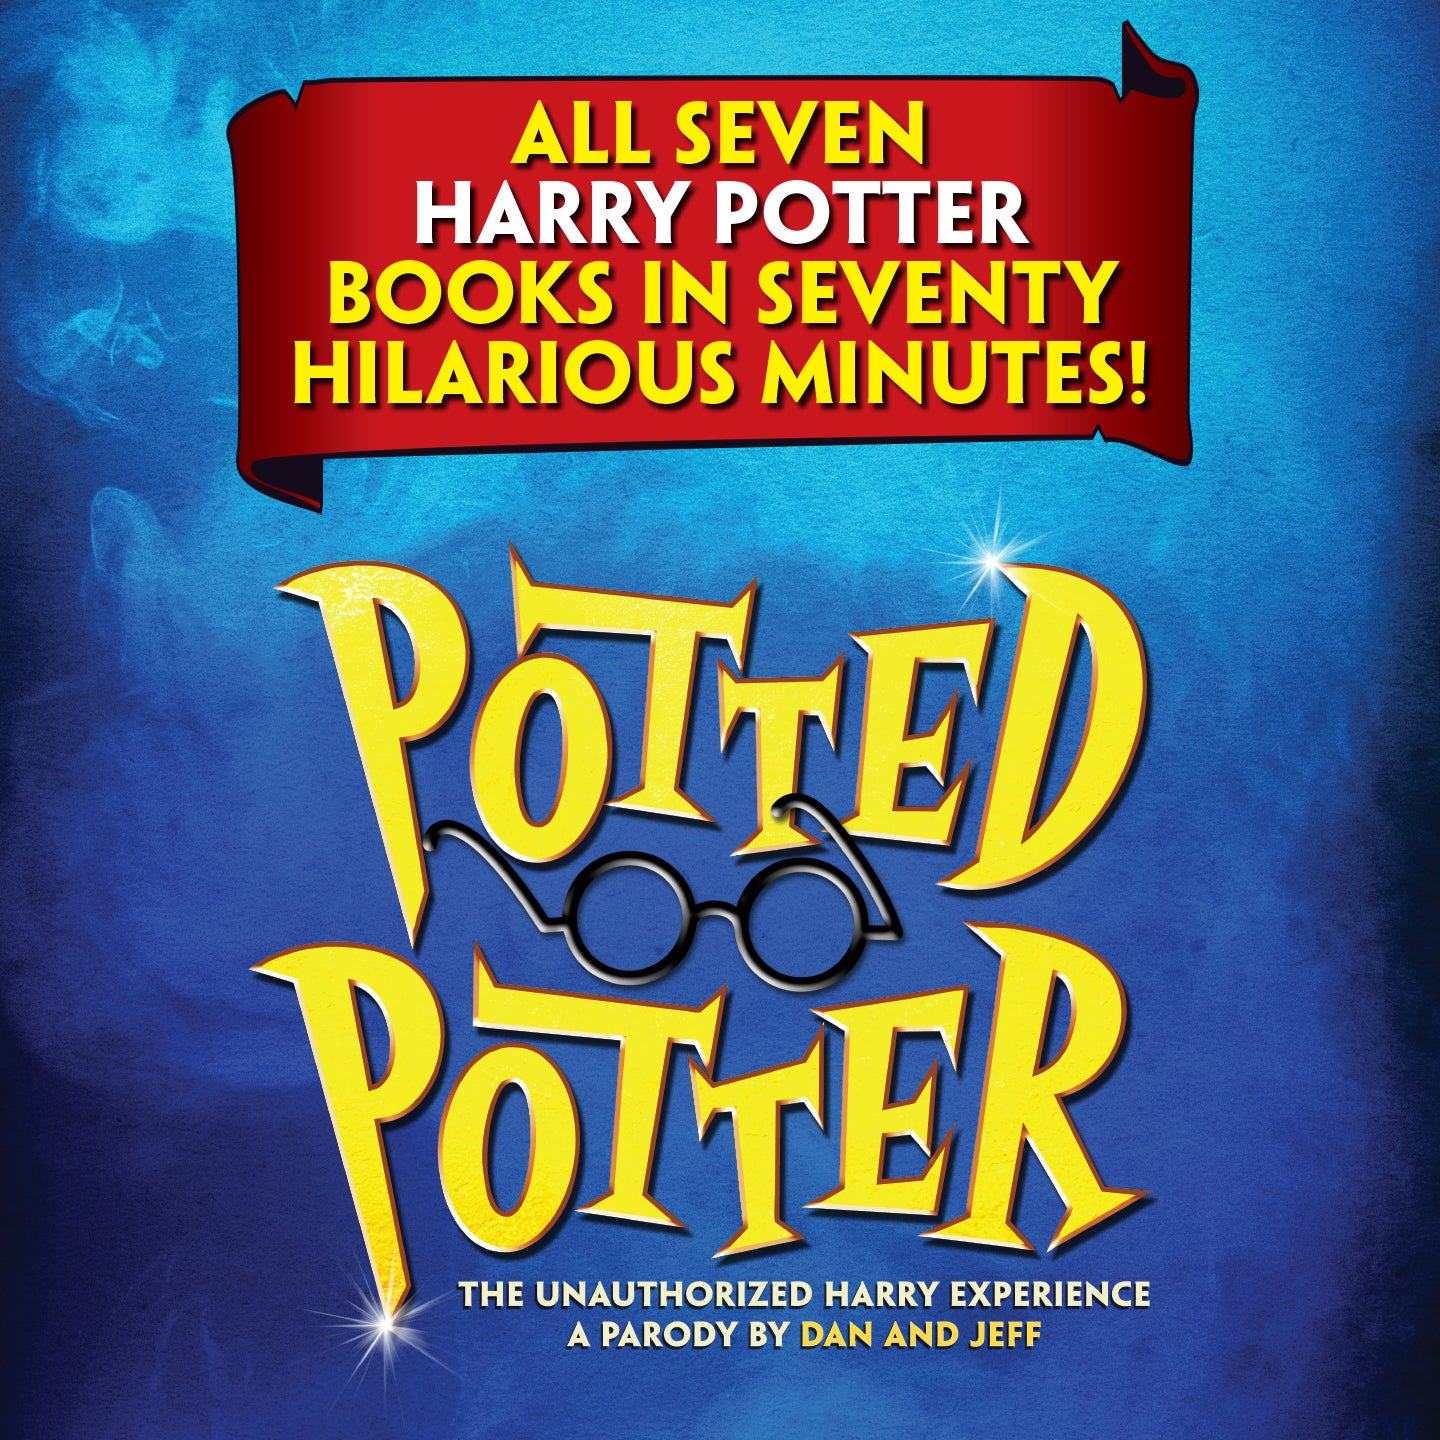 Potted Potter – The Unauthorized Harry Experience – a Parody by Dan and Jeff